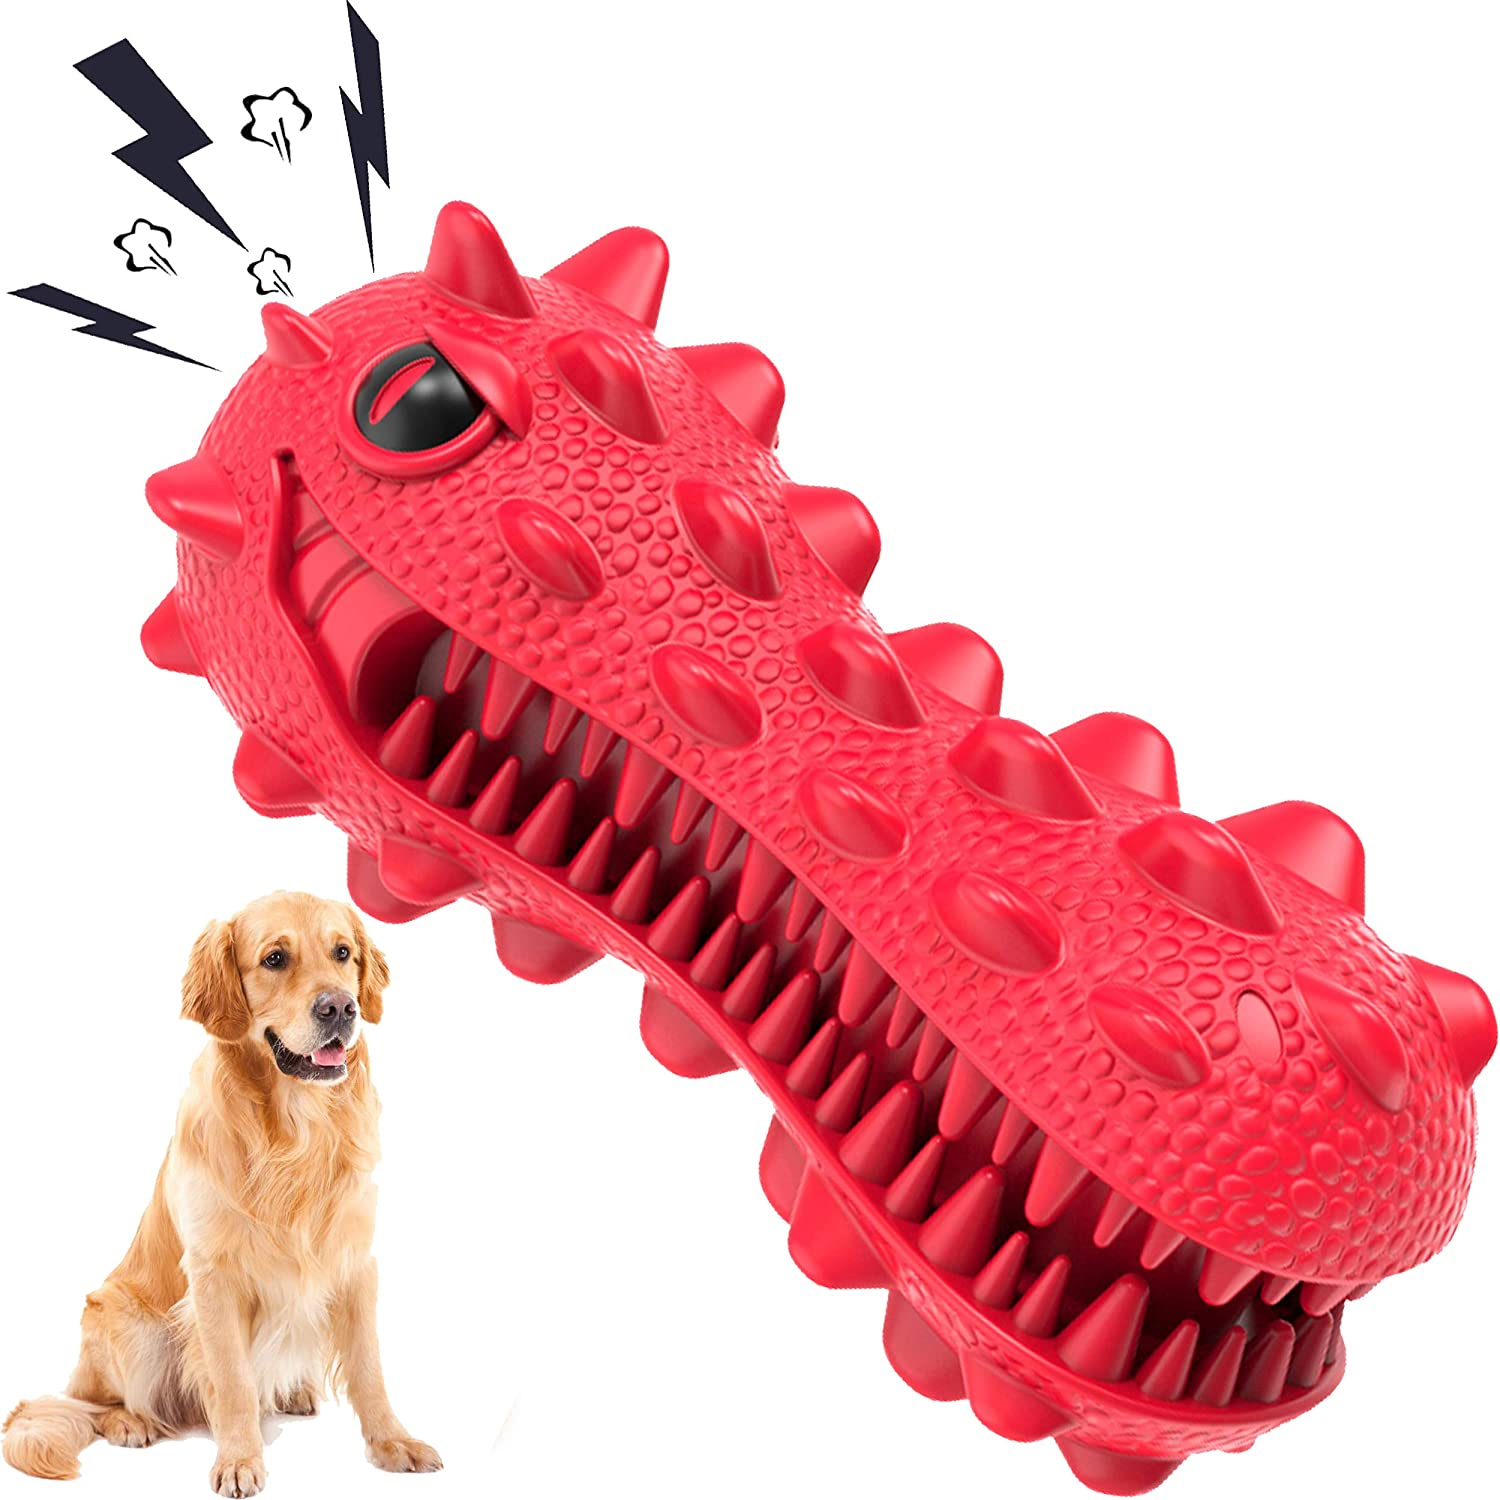 SHANFEEK Dog Chew Toys for Aggressive Chewers Large Breed Squeaky Dog Toys for Medium Dog Toothbrush Indestructible Dog Toys Large Breed Puppy Teething Chew Toys …